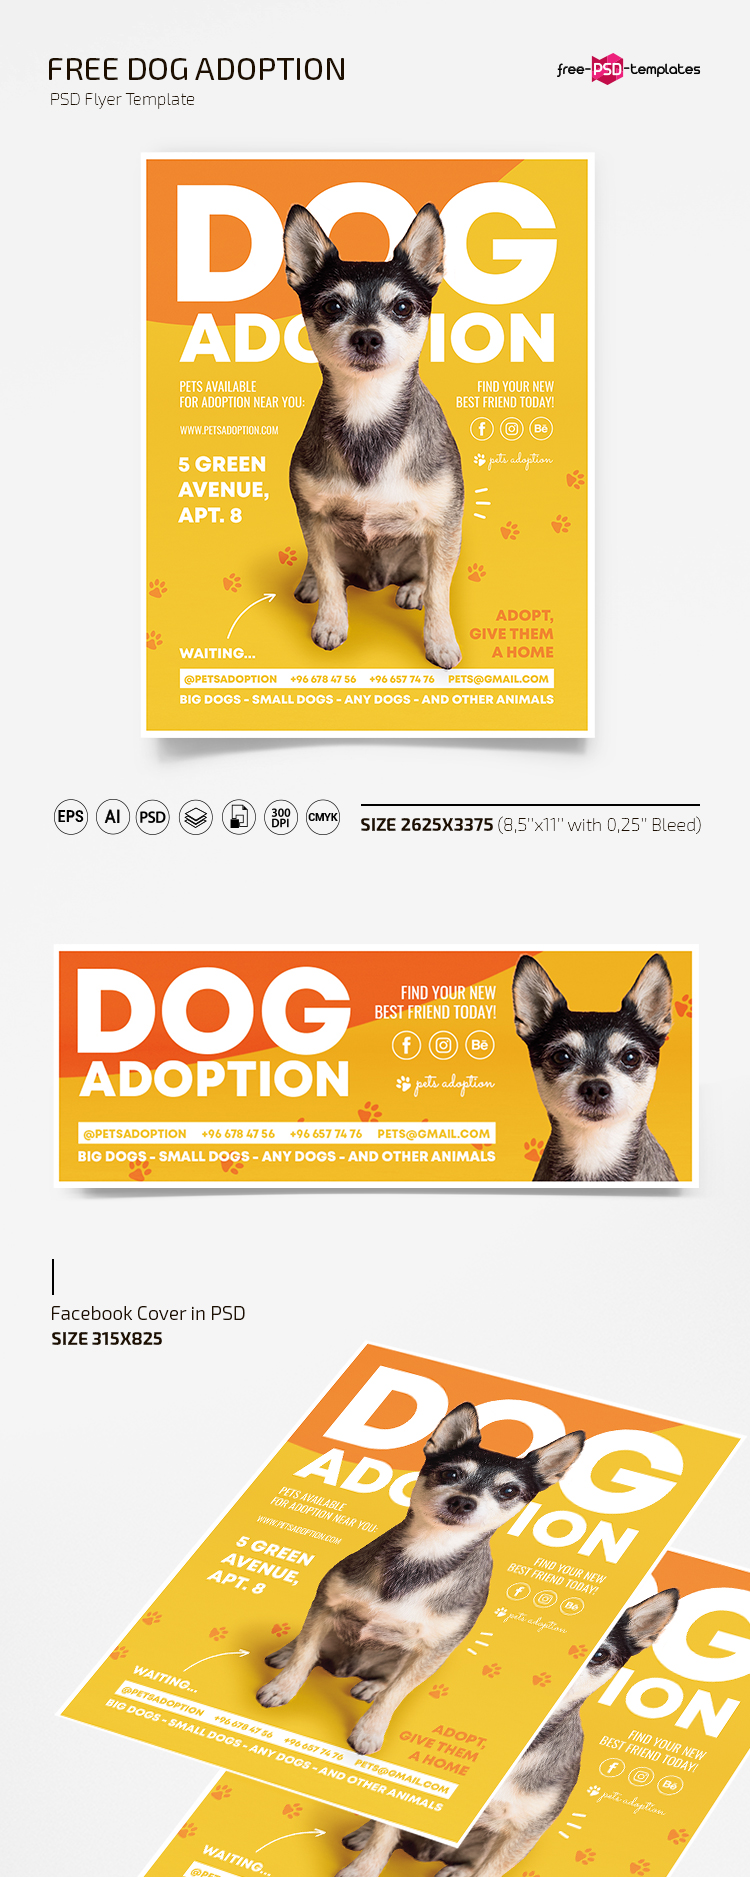 Pet Adoption Flyer Template Free from free-psd-templates.com